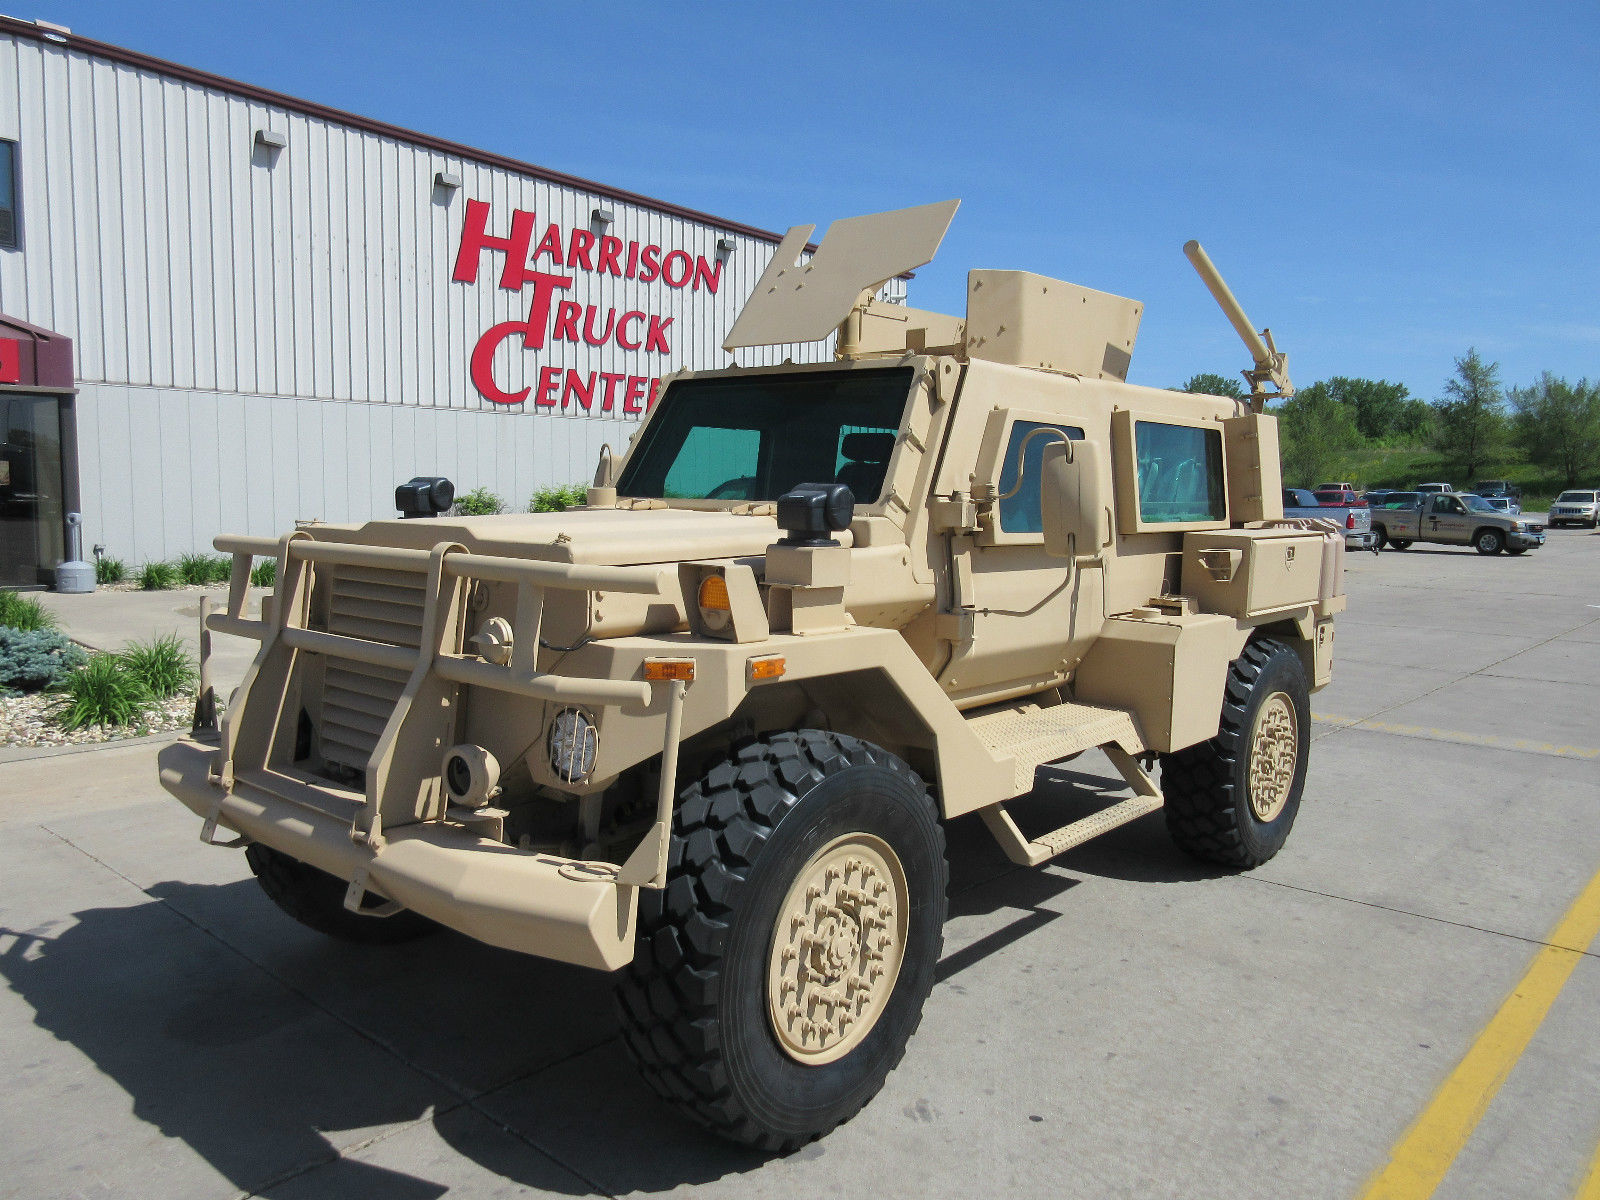 Ebay Used Cars for Sale Lovely Armored Military Vehicle Used In Iron Man 3 is On Ebay Autoevolution